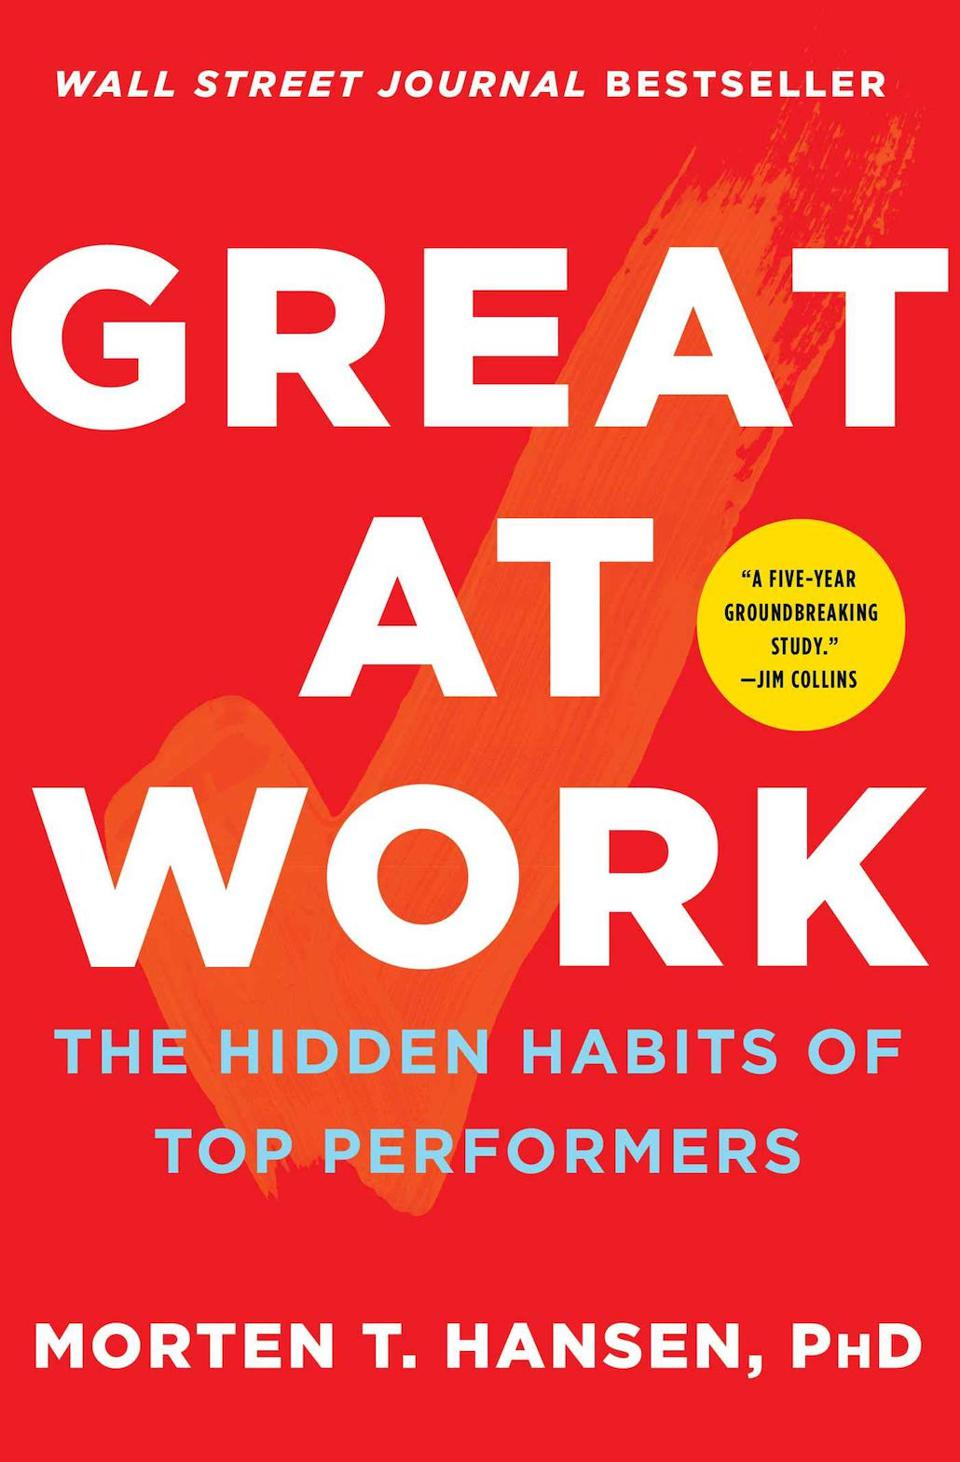 Great at Work: The Hidden Habits of Top Performers by Morten T. Hansen